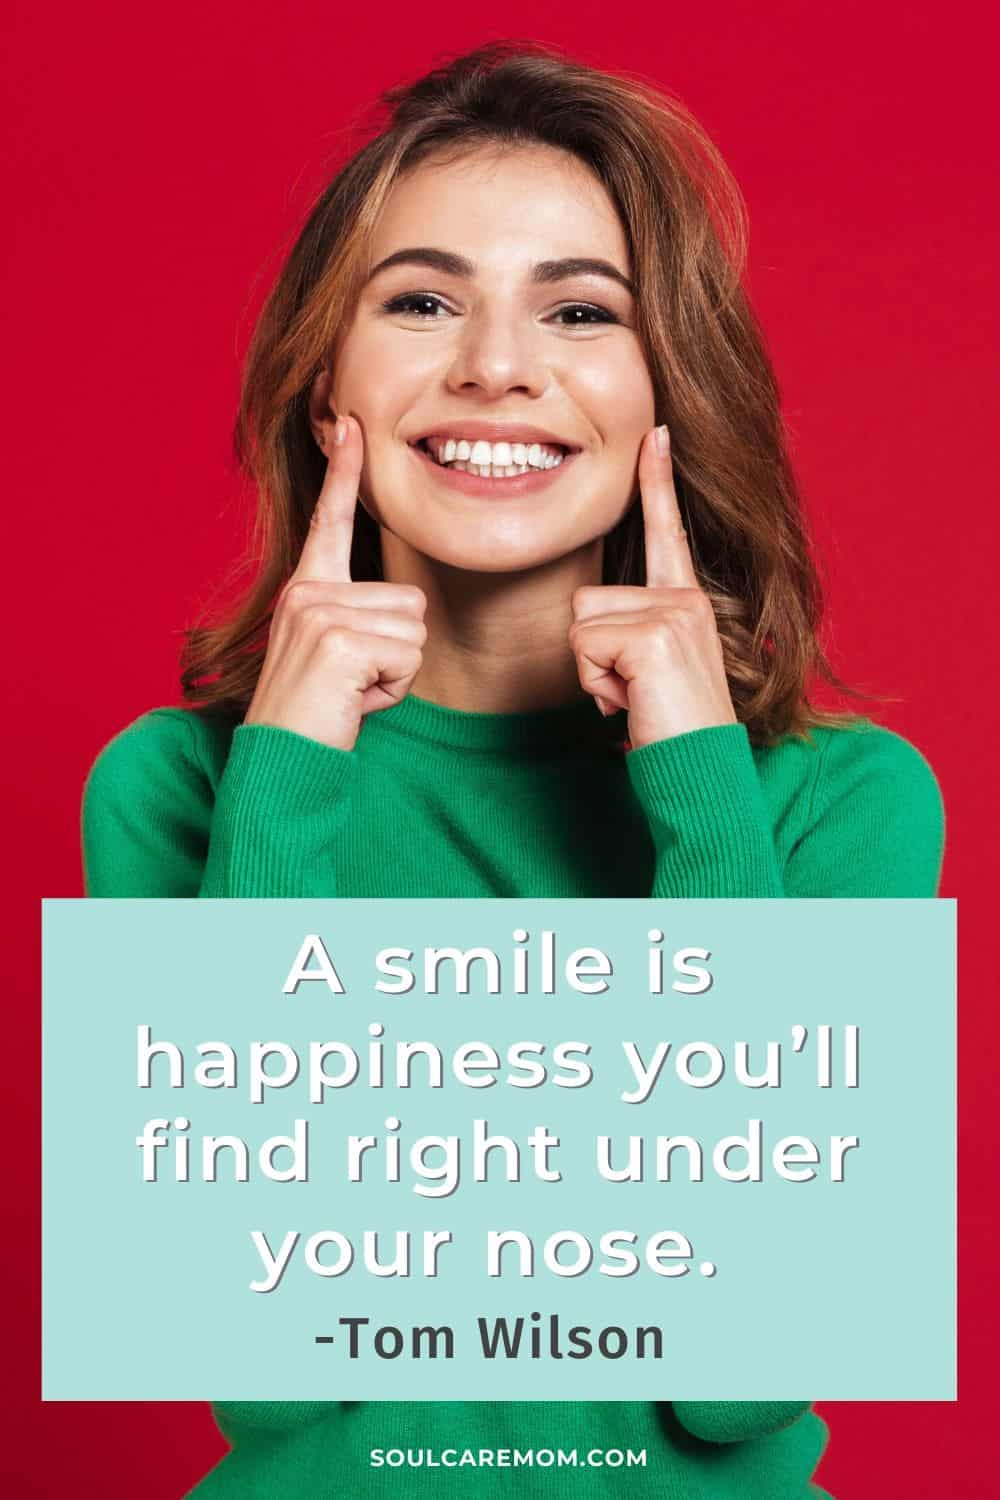 A smile is happiness you'll find right under your nose. -Tom Wilson - Smile Quote - Soul Care Mom